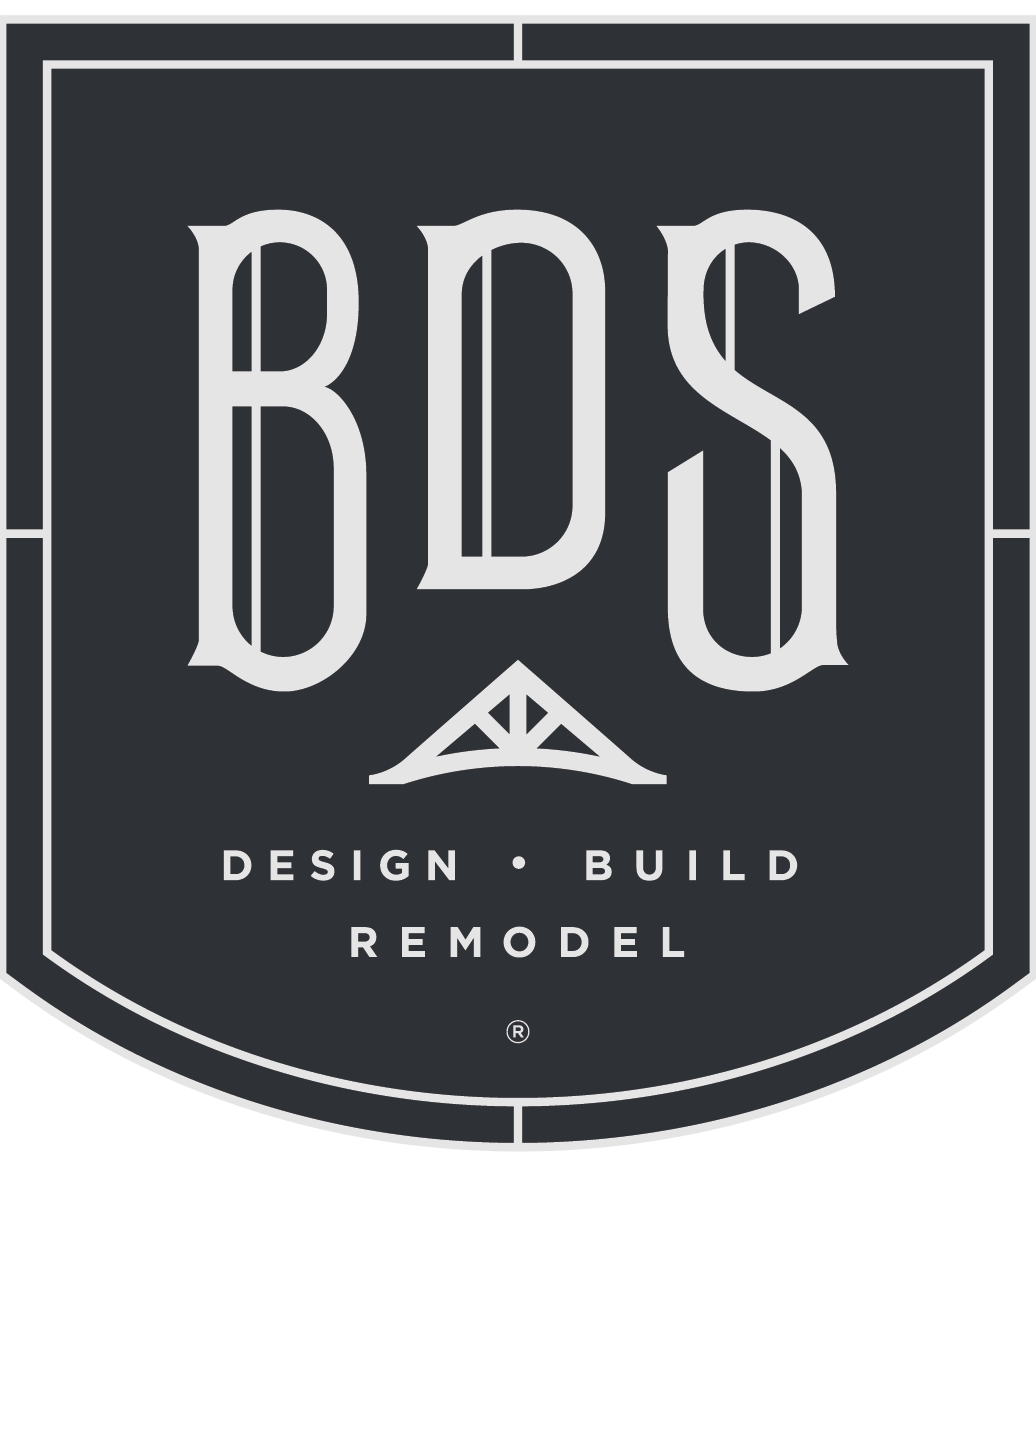 BDS_logo_2018_3.png